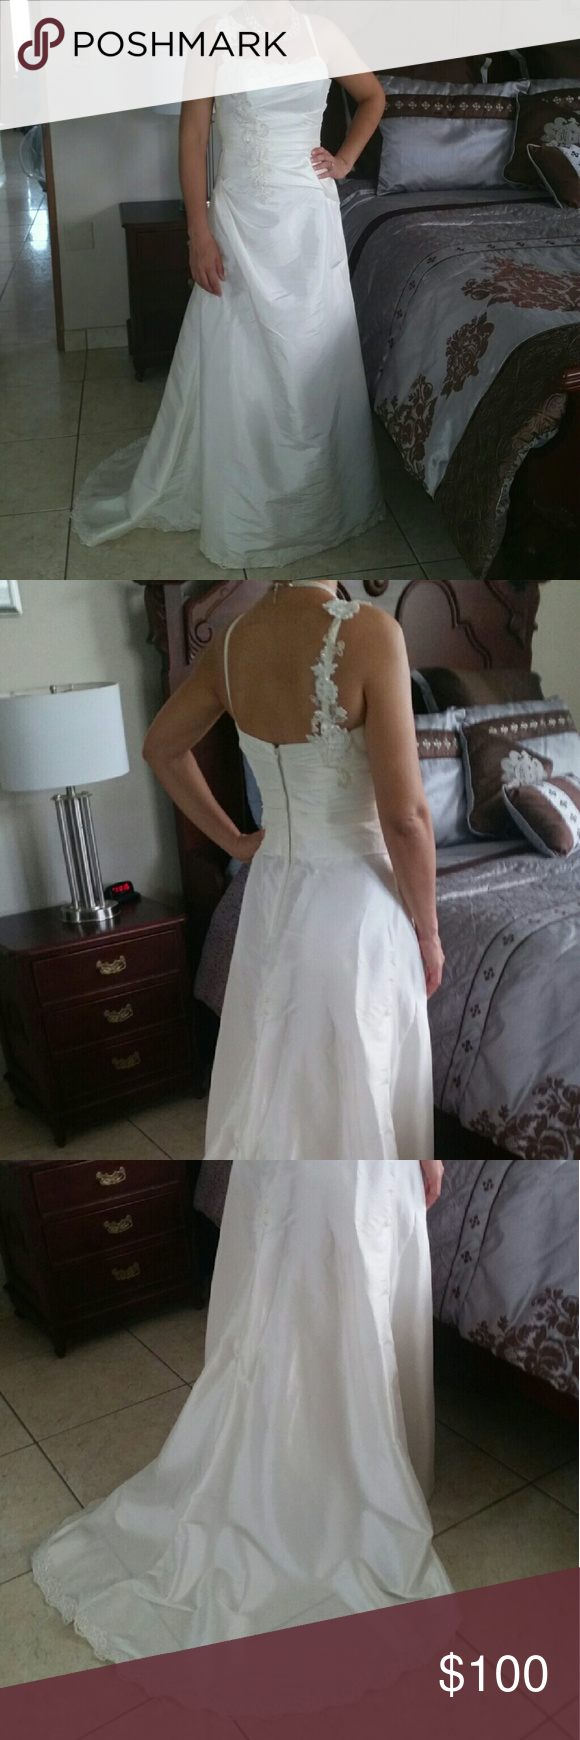 "David's Bridal wedding dress Wedding dress. Size 6. Color Ivory. Measures line flat: shoulder to hem 59""...waist 15"".  Shell: 59% polyester & 41 nylon...Lining 100% polyester....Netting: 100% nylon. Worn once. Perfect condition. David's Bridal Dresses Wedding"